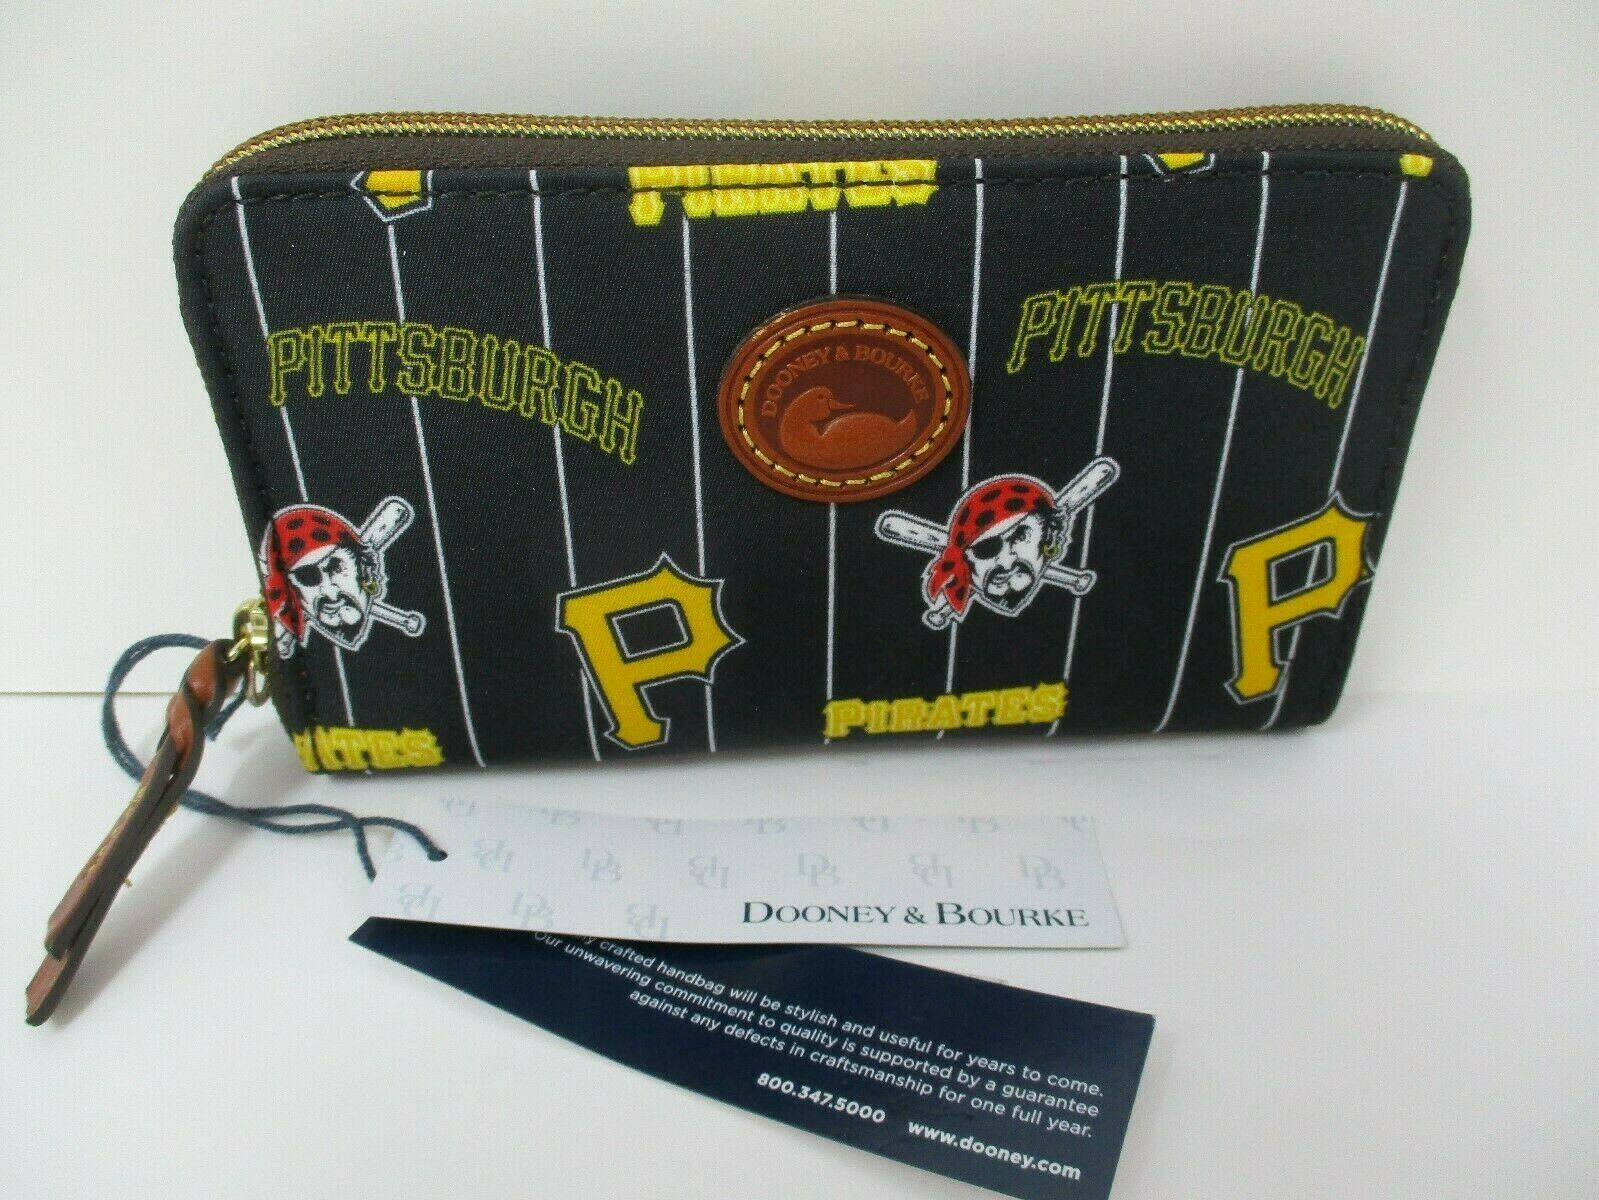 Dooney & Bourke Pittsburgh Pirates Zip Around Phone Wristlet New With Tags